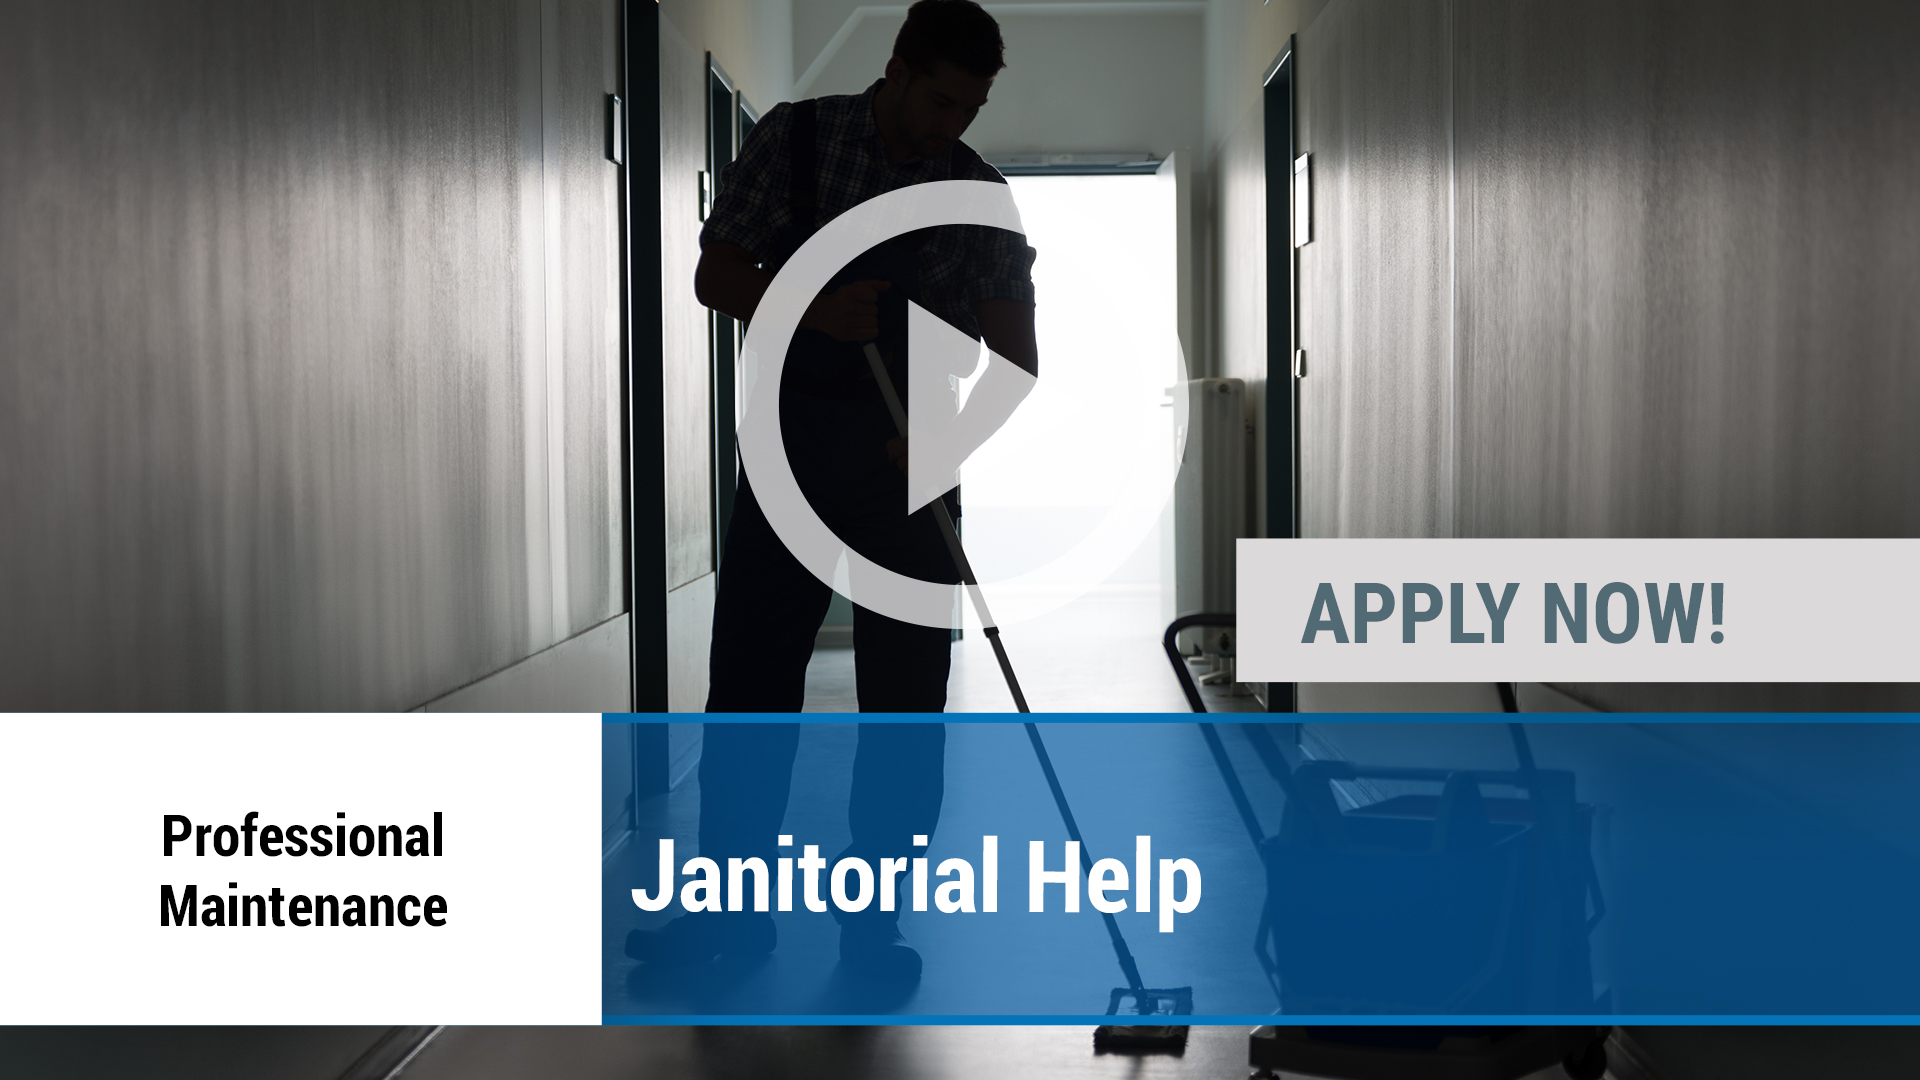 Watch our careers video for available job opening Janitorial Help in Lubbock, TX